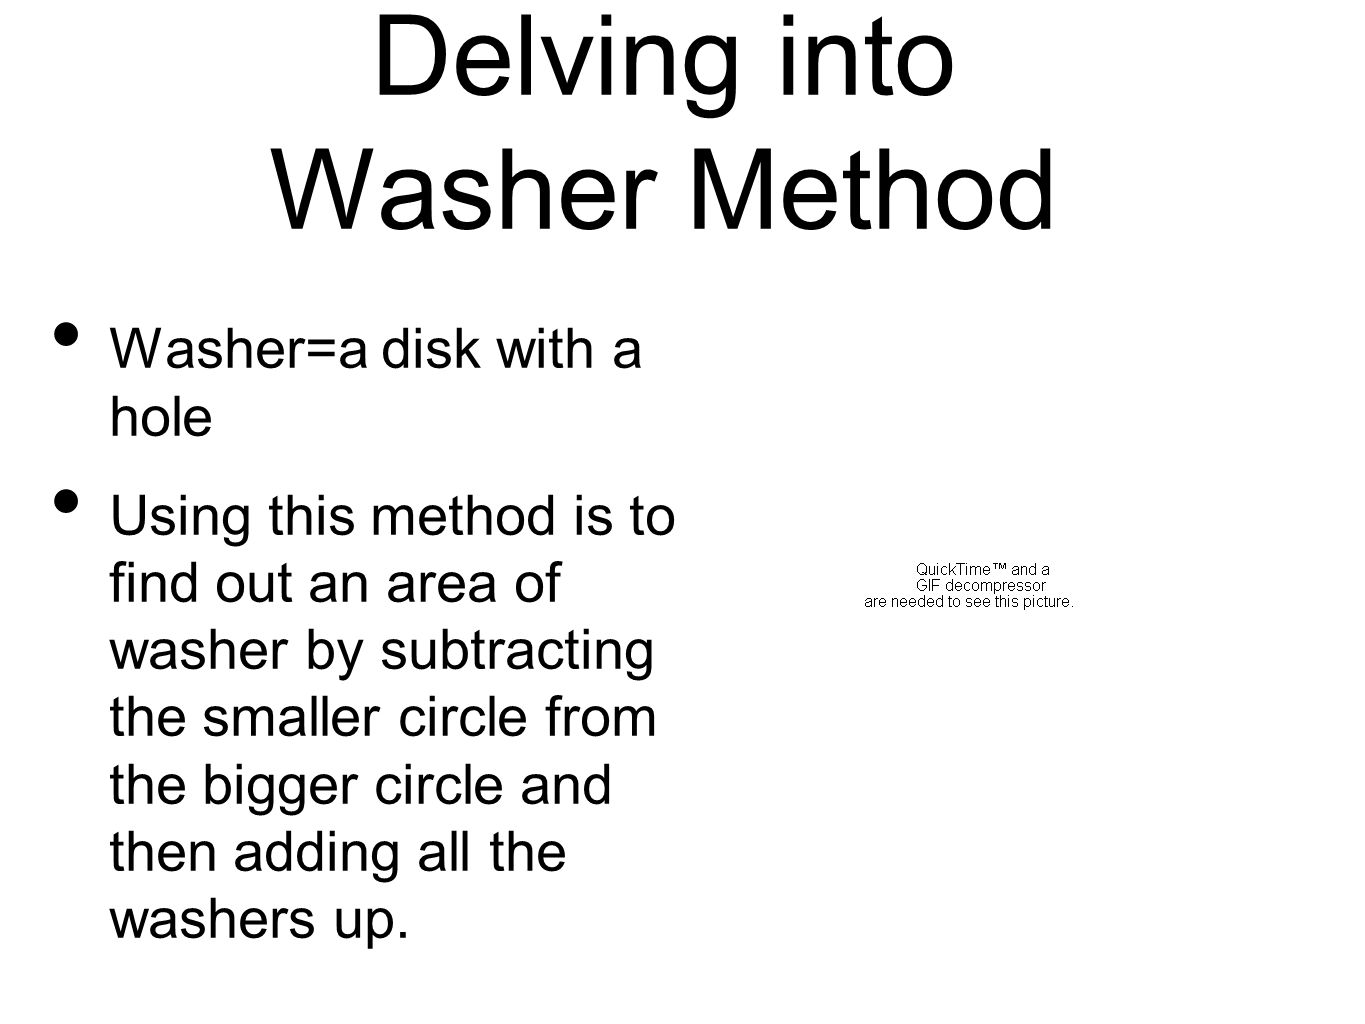 Washer=a disk with a hole Using this method is to find out an area of washer by subtracting the smaller circle from the bigger circle and then adding all the washers up.